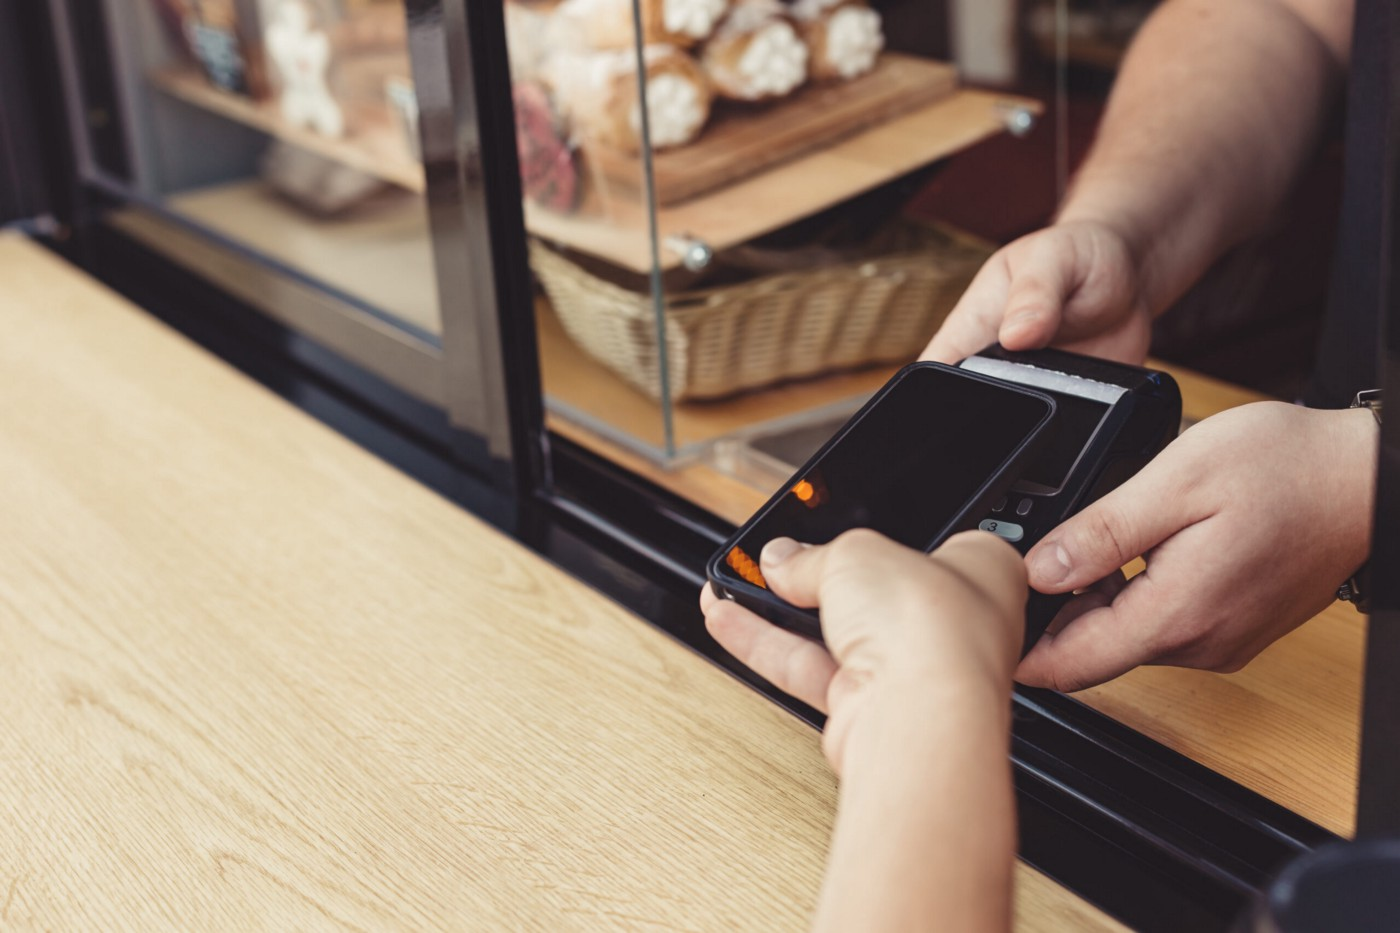 All You Need To Know About Mobile Wallet Technology